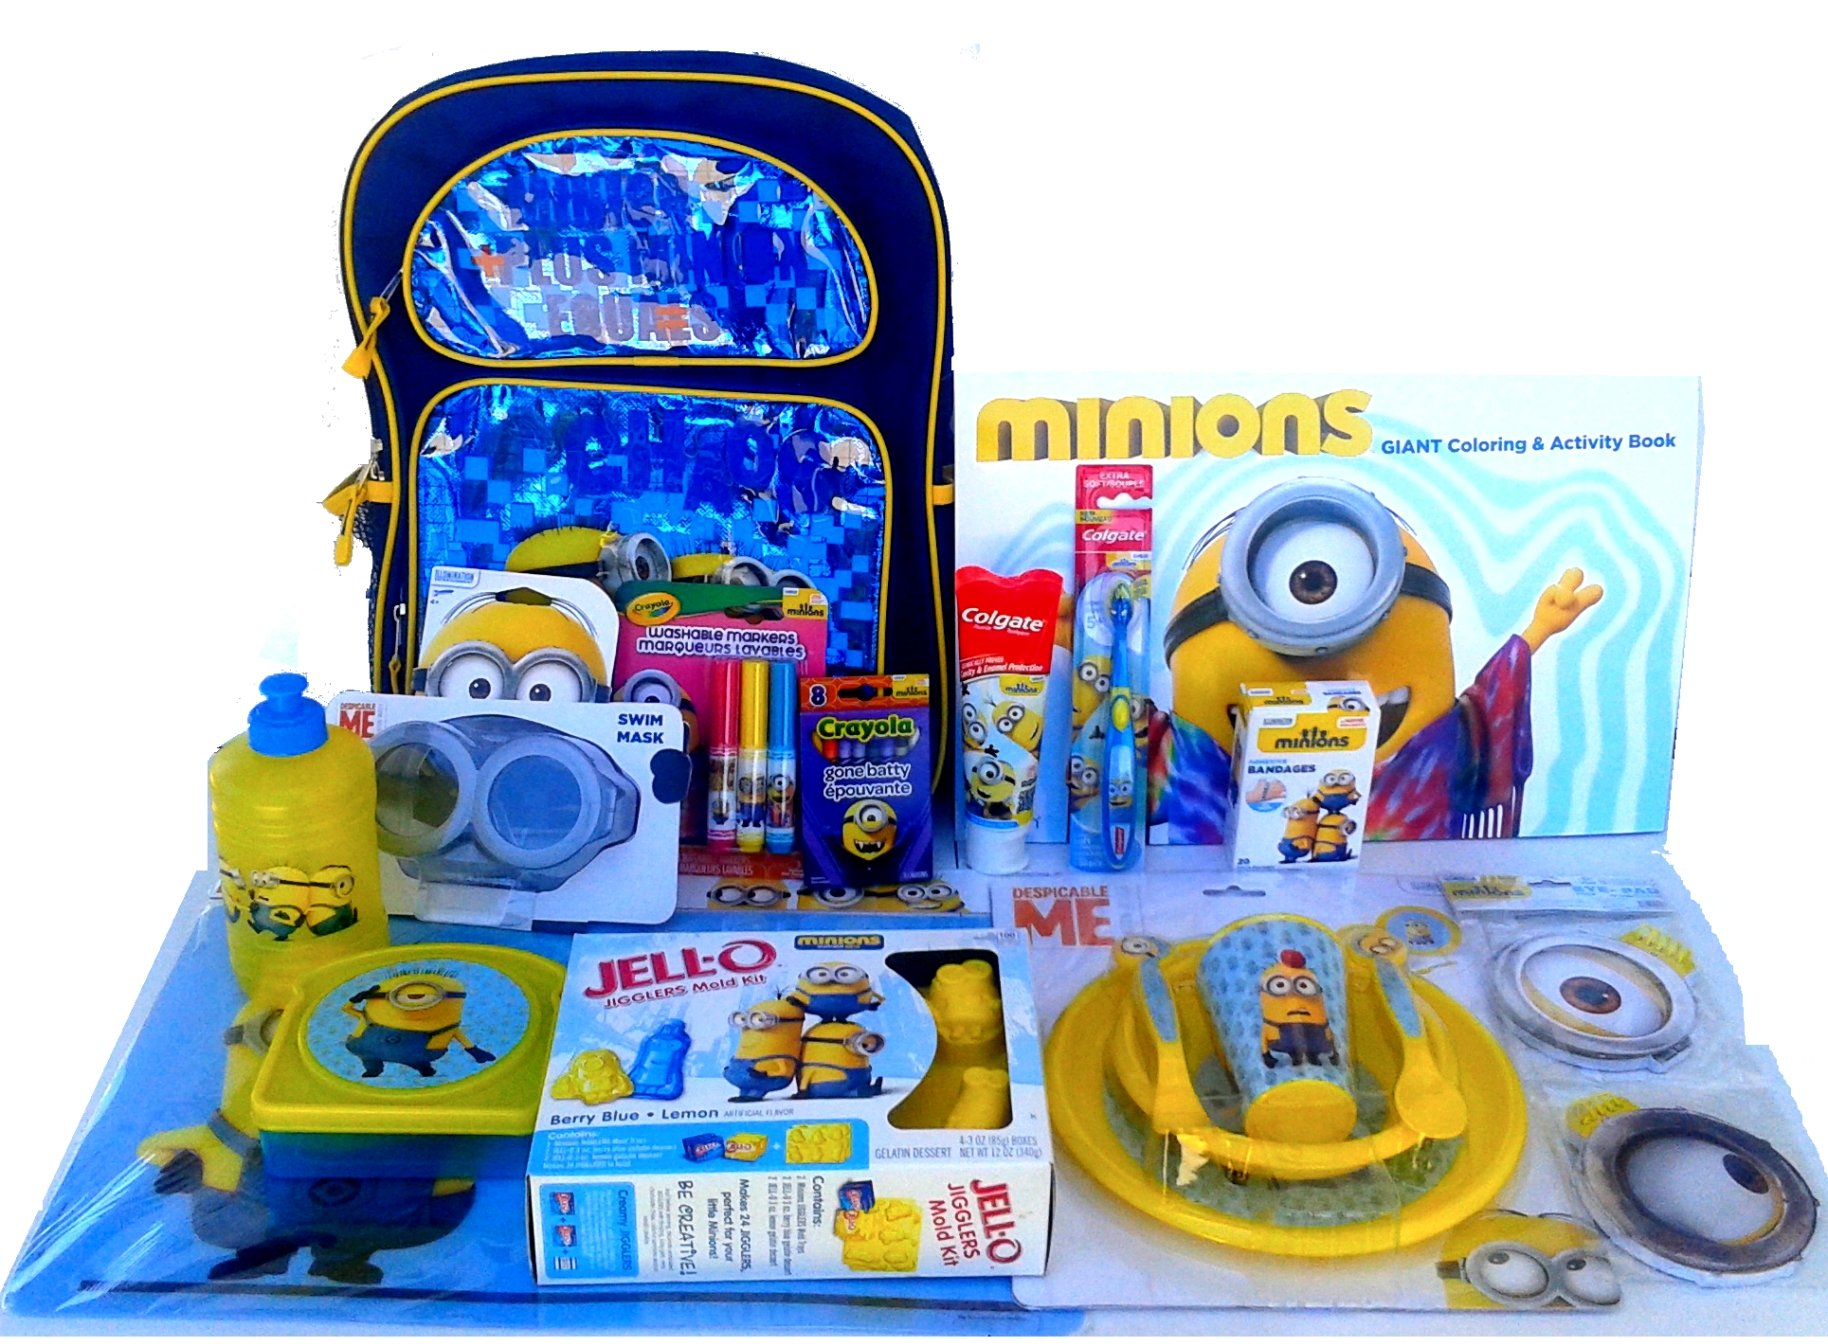 Minions Extravaganza Back 2 School Supplies and Dental Care-ONe in a MINION Package by Minions